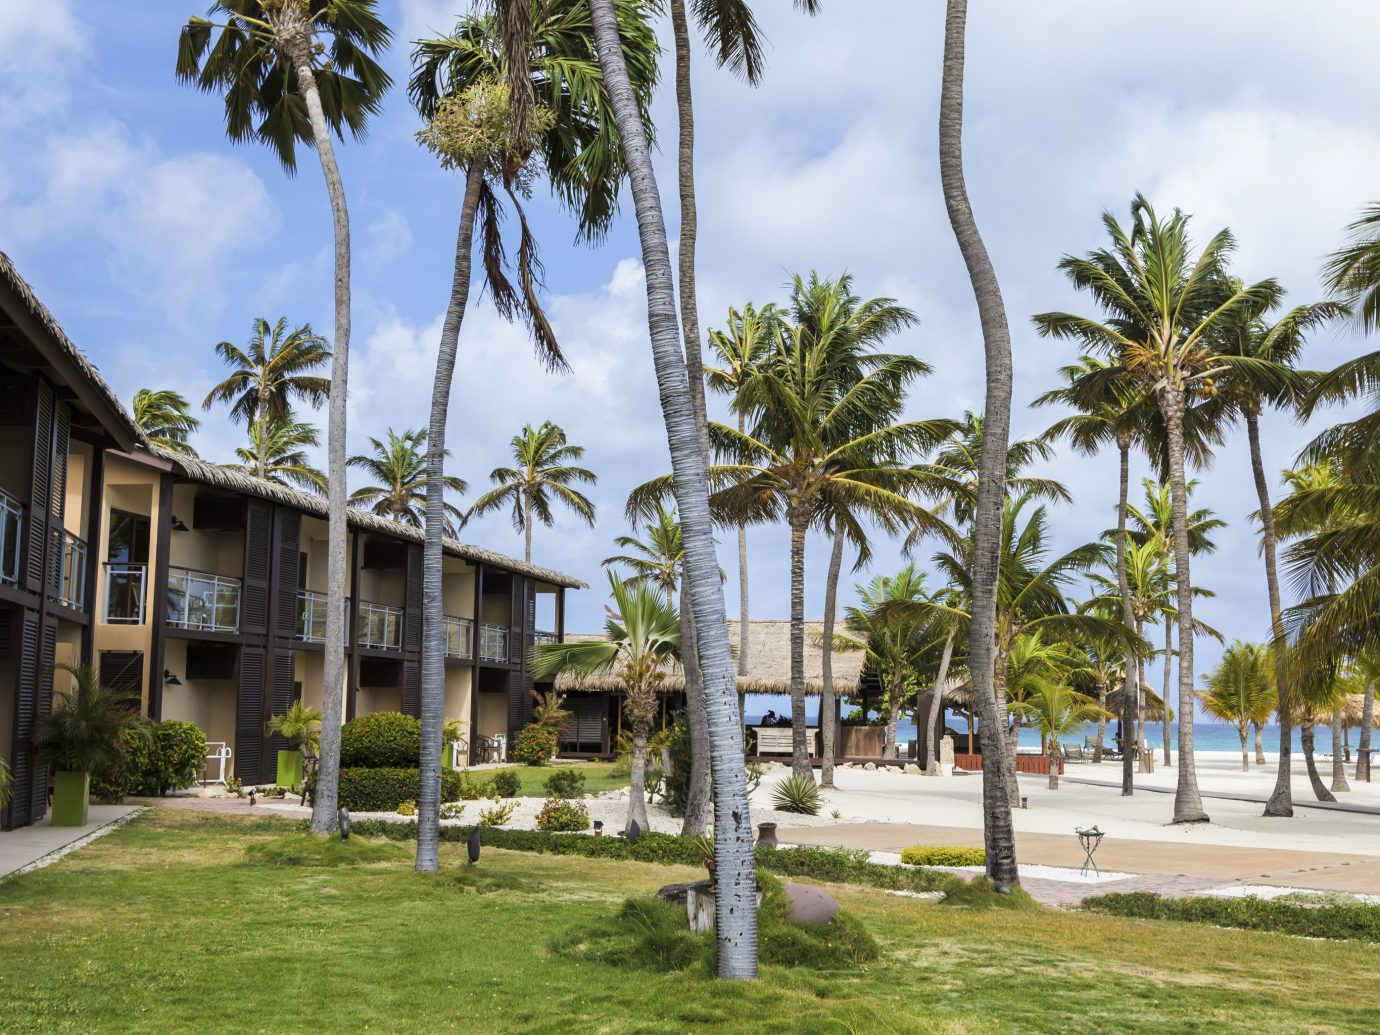 Aruba caribbean Hotels tree grass outdoor sky palm property Resort plant vacation Beach estate arecales palm family woody plant walkway Village lawn